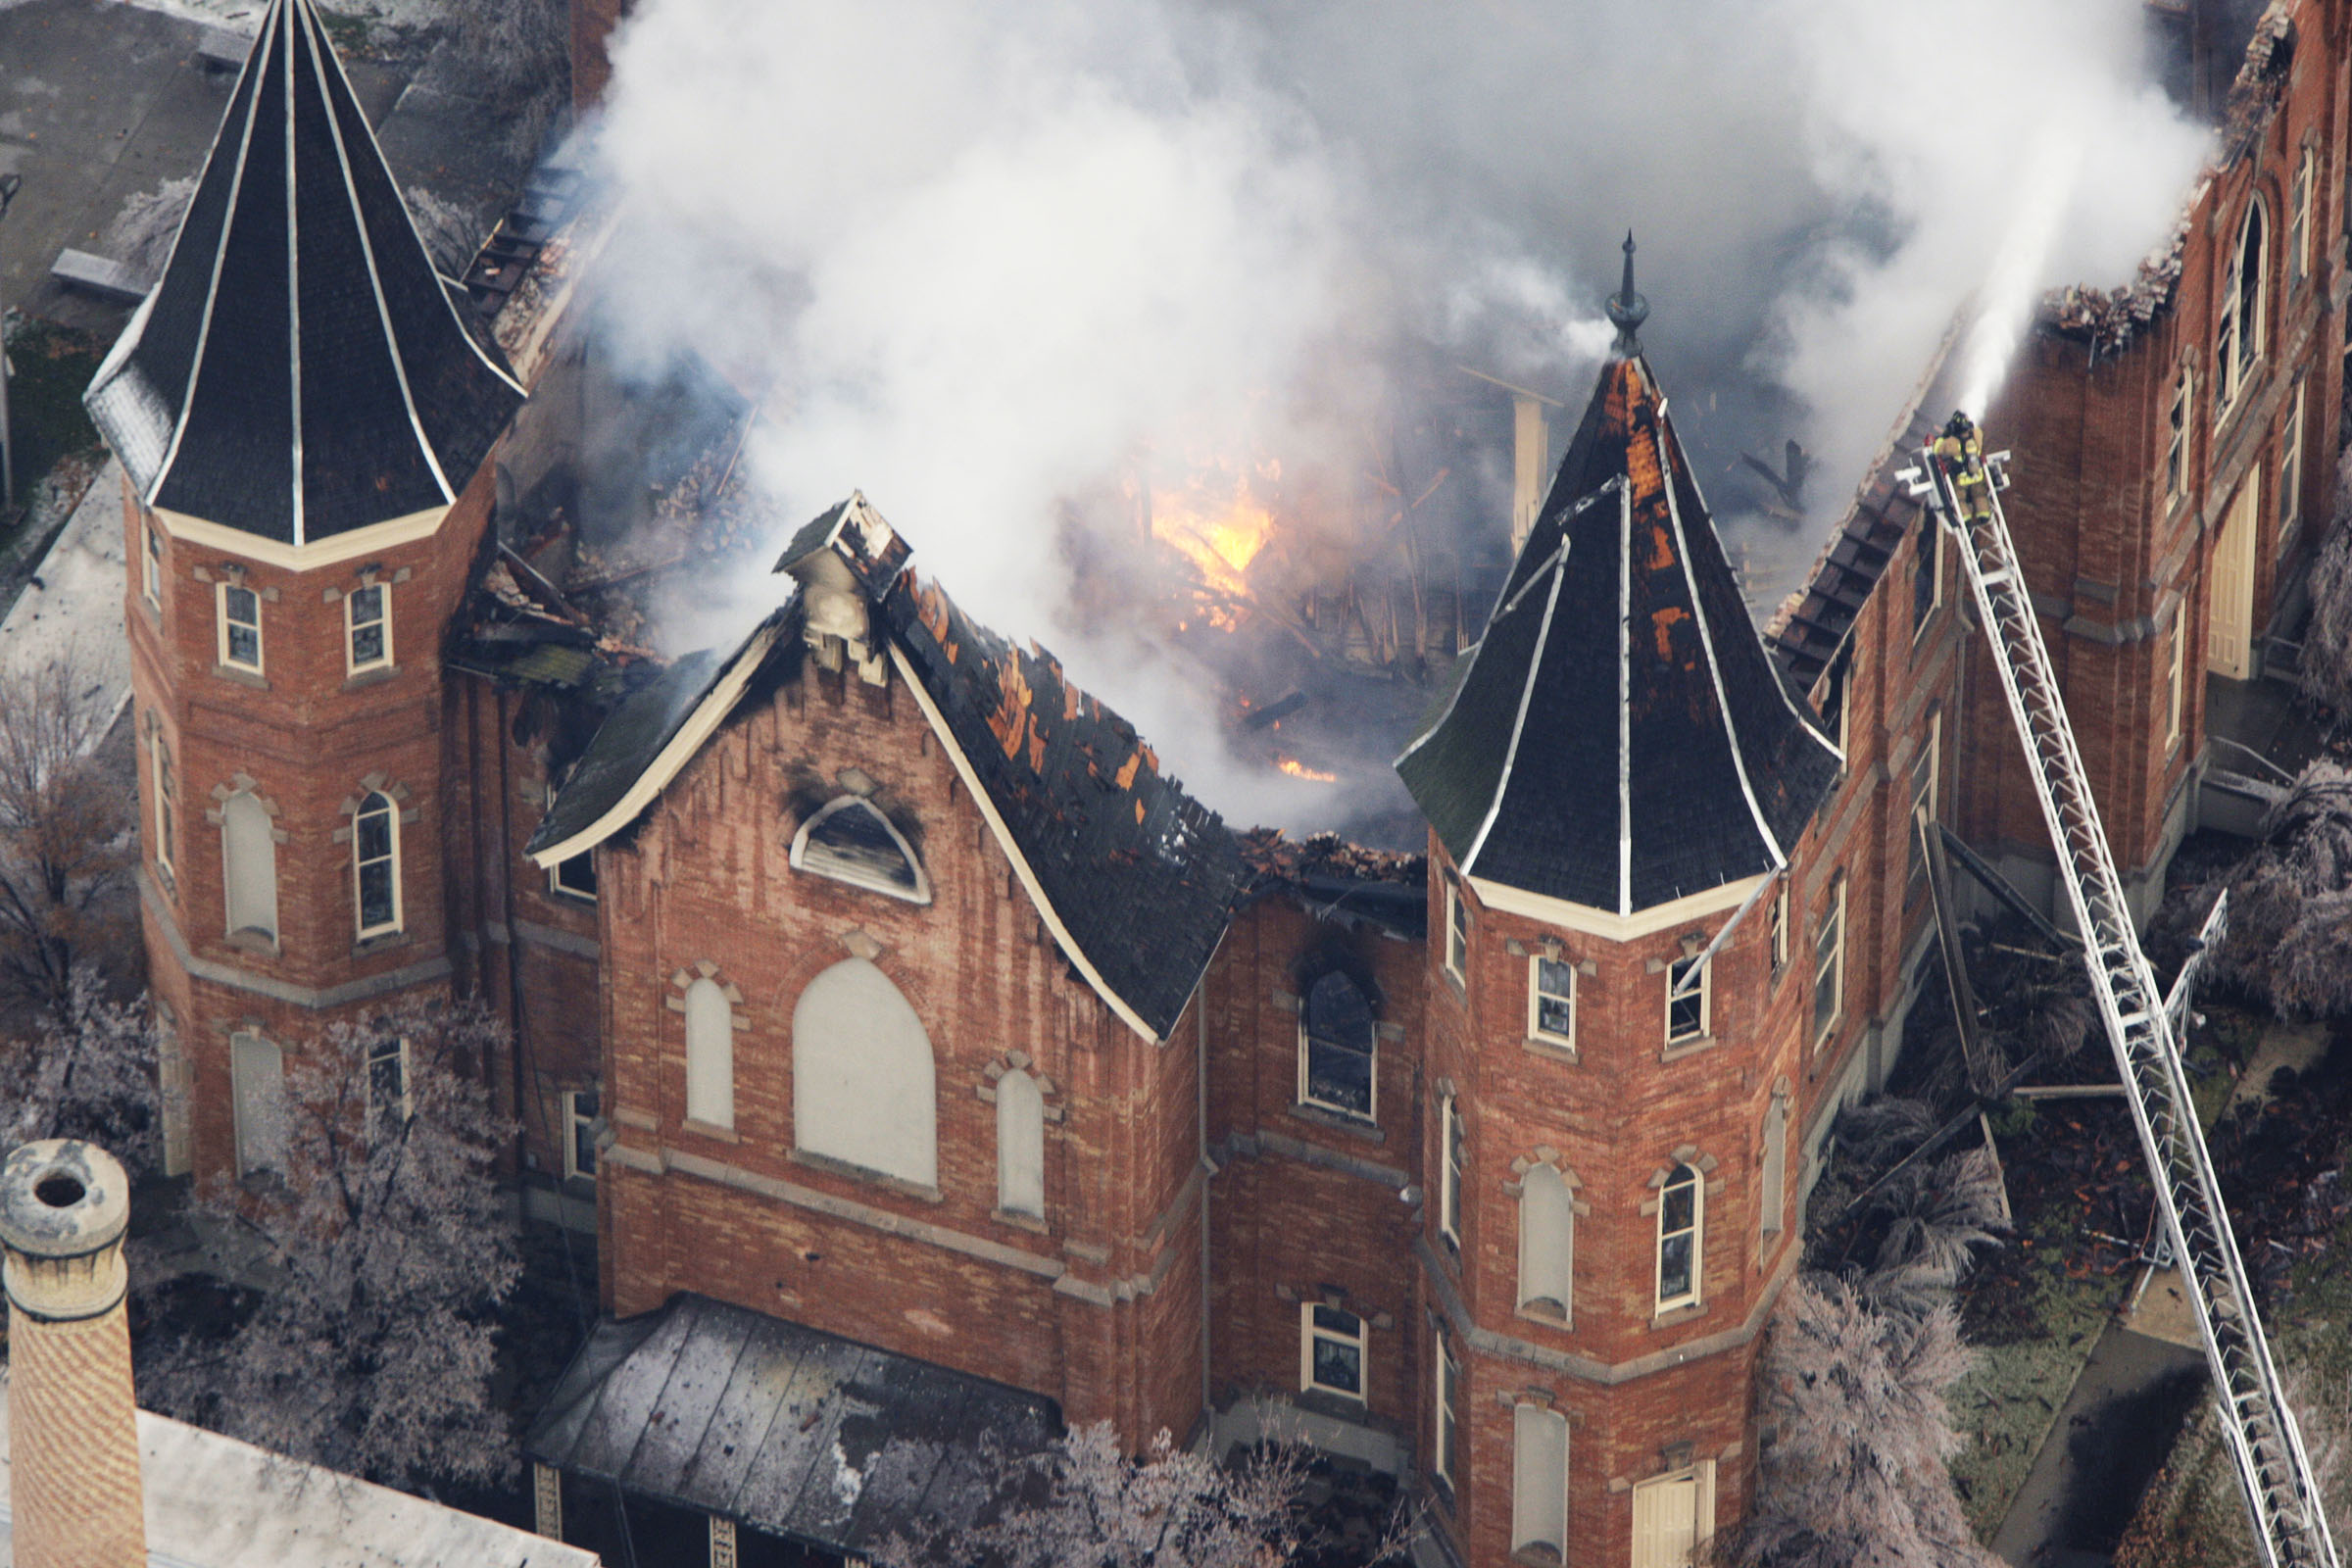 The LDS Provo Tabernacle burns as fire fighters try and knock down the flames and hot spots in Provo, Utah, Dec. 17, 2010.